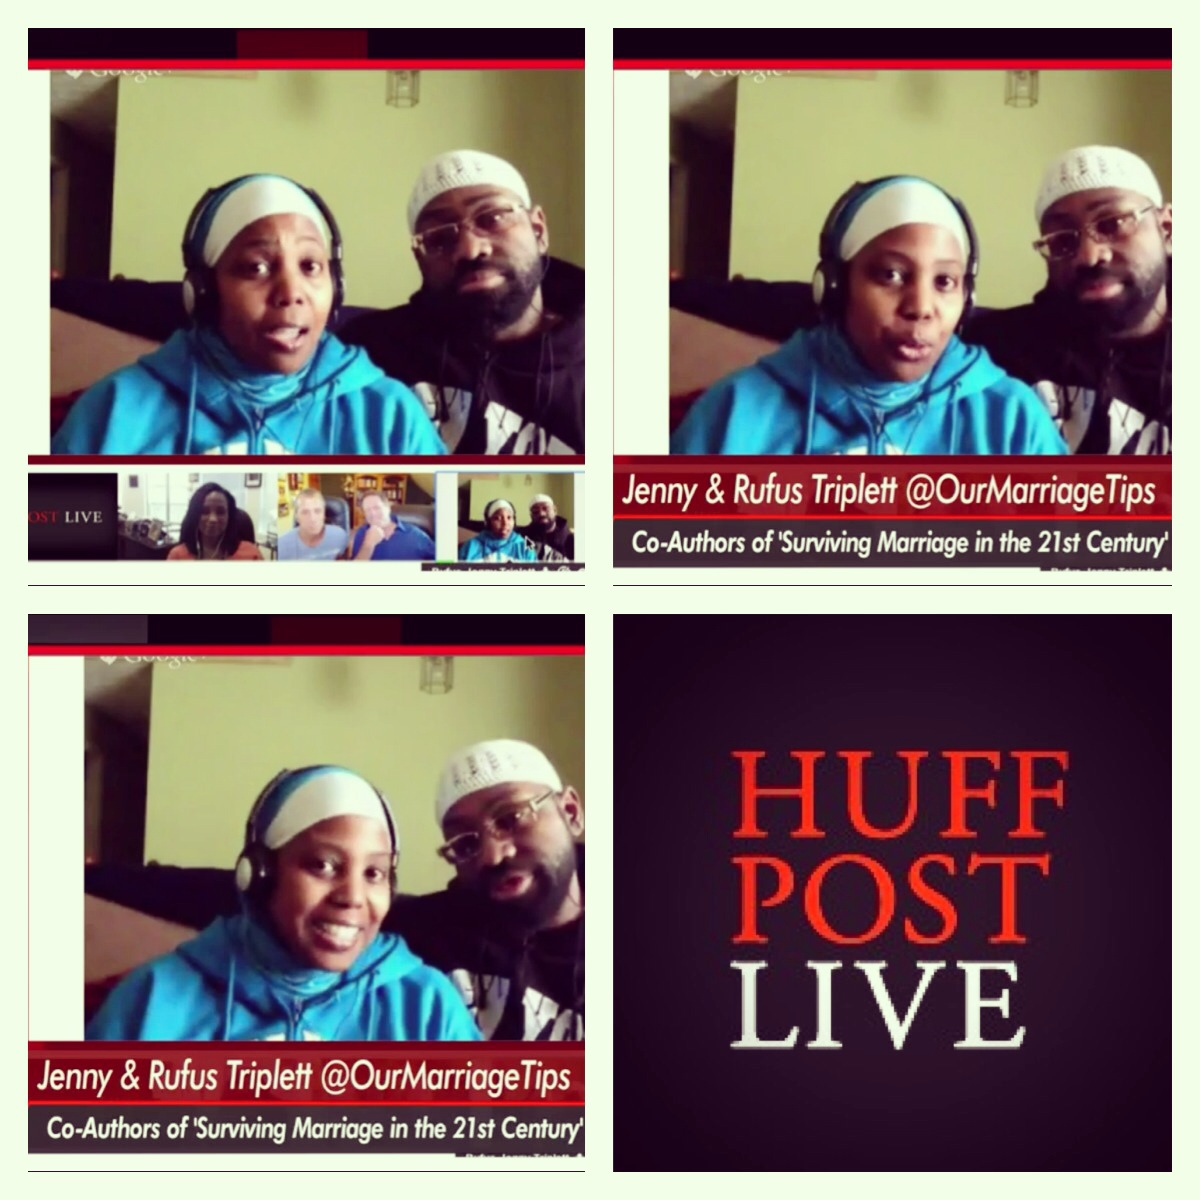 Jenny and Rufus go viral on Huff Post Live